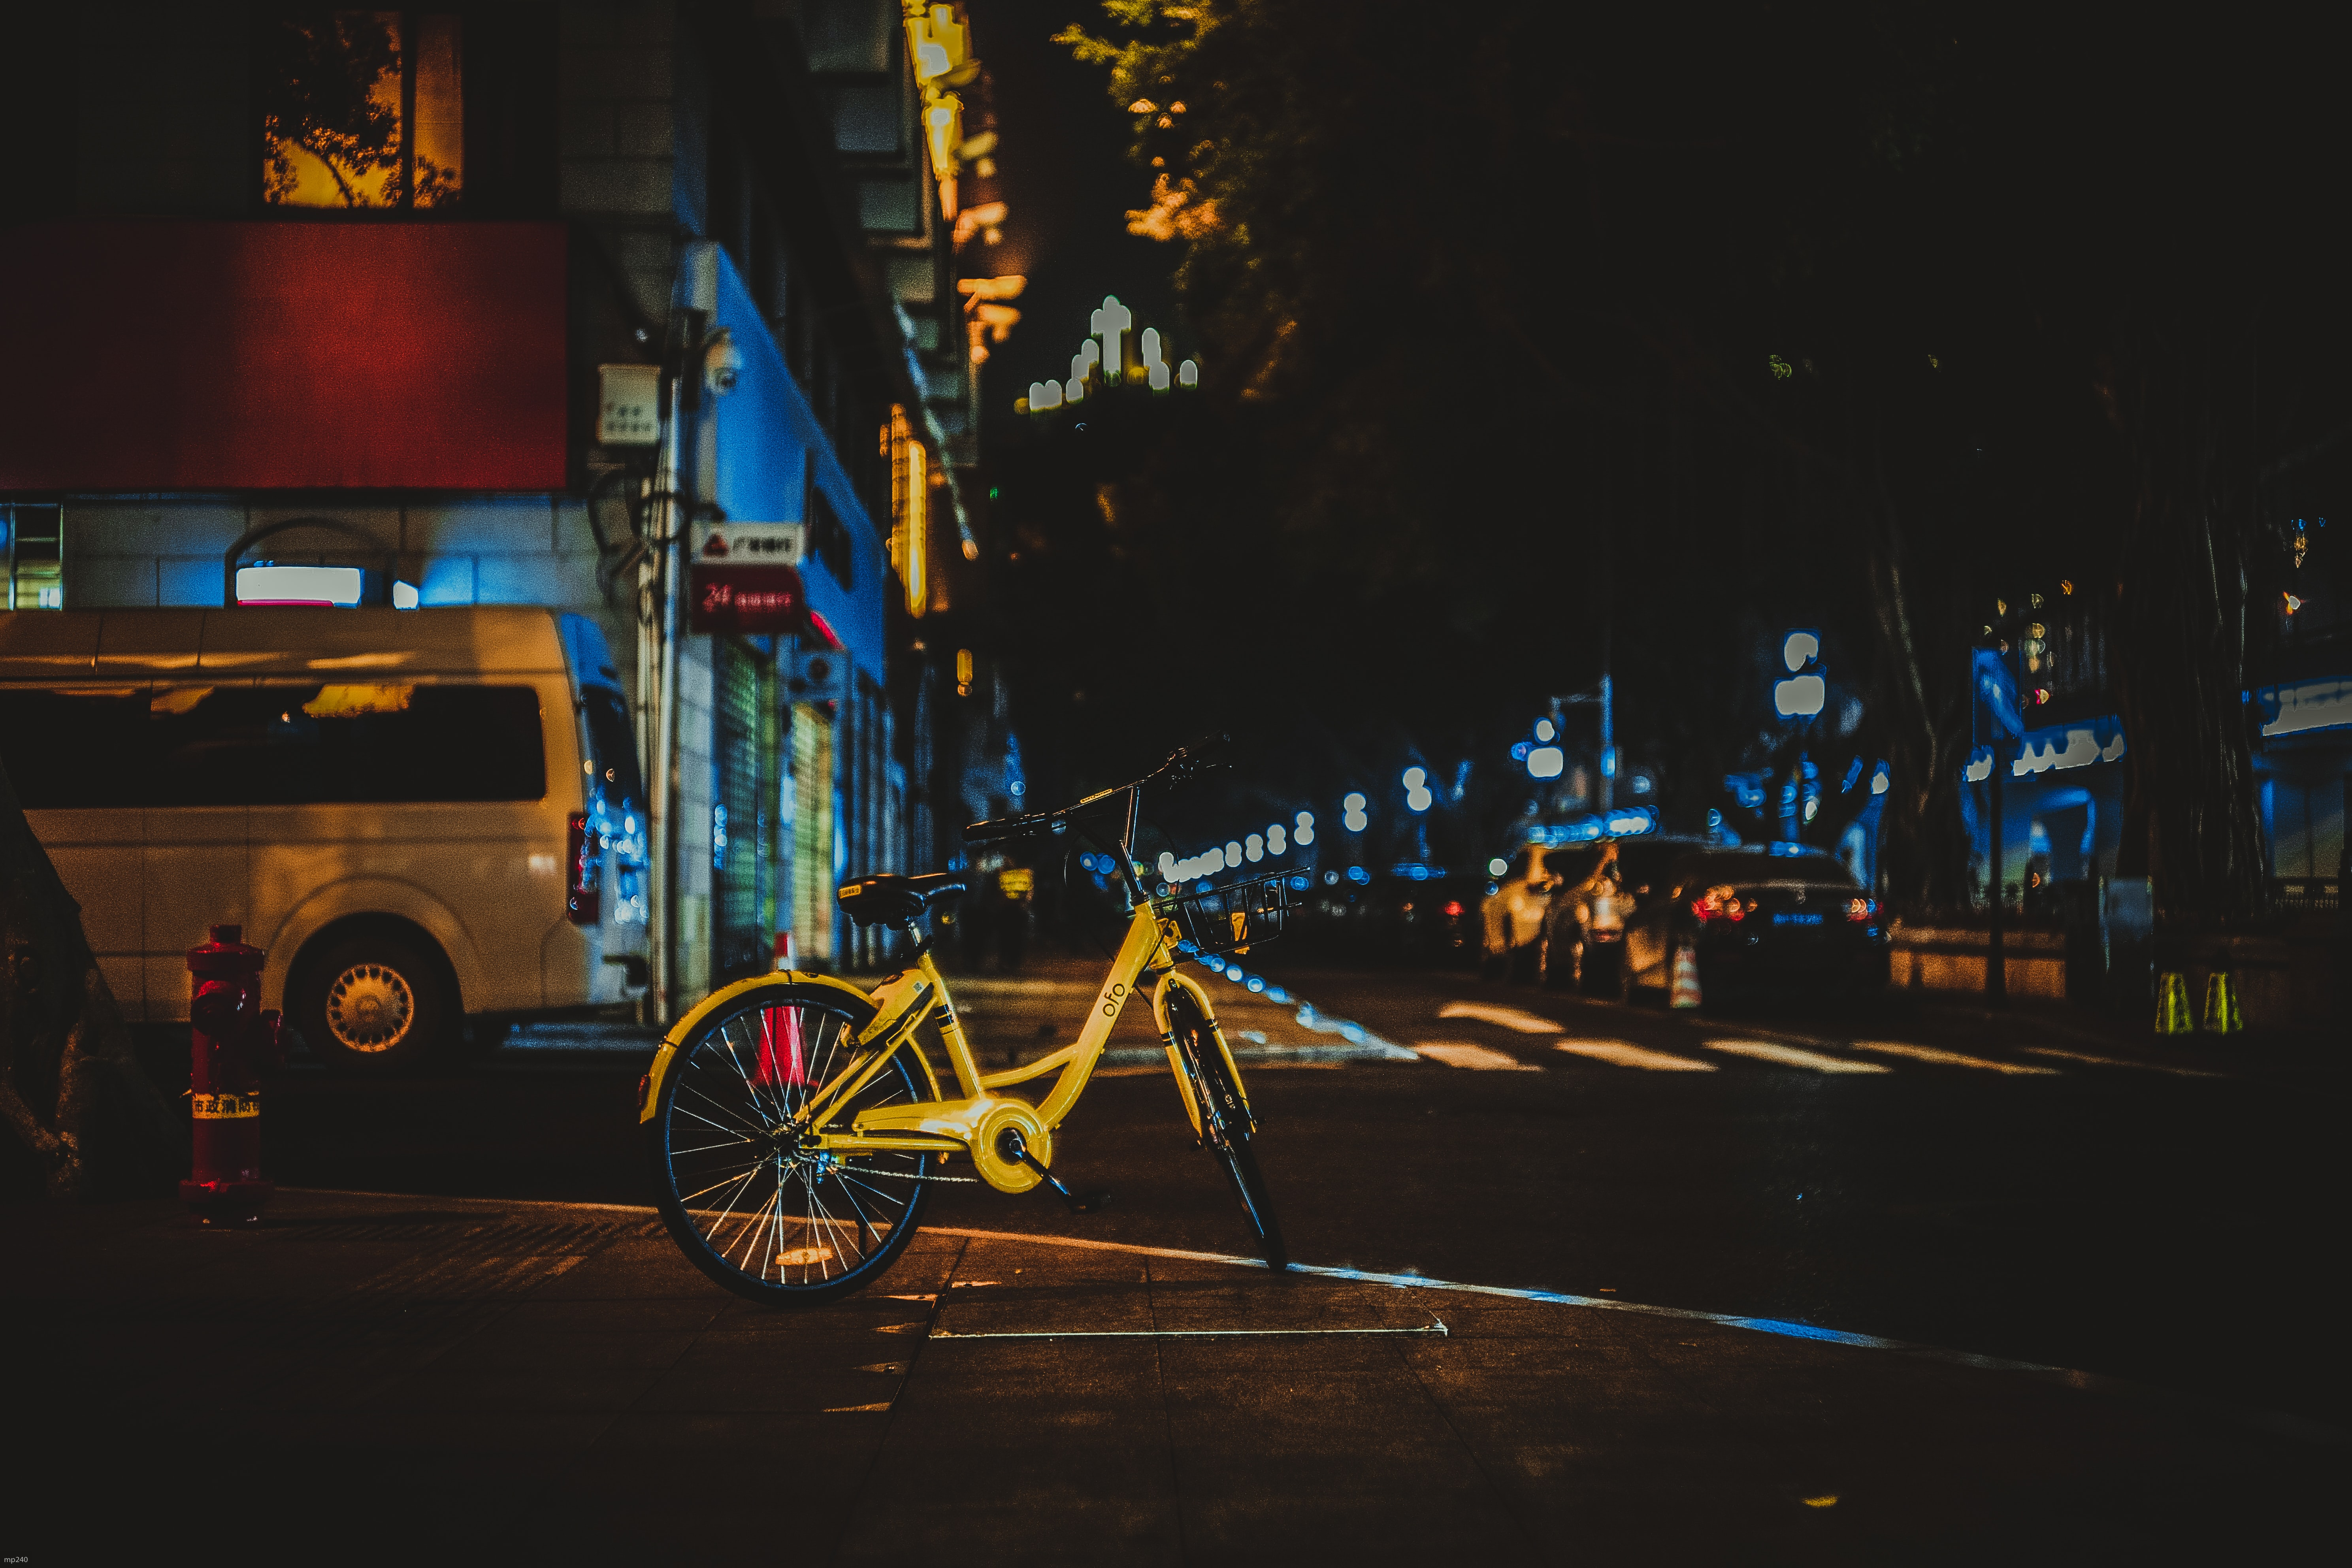 yellow bicycle park beside road during nighttime